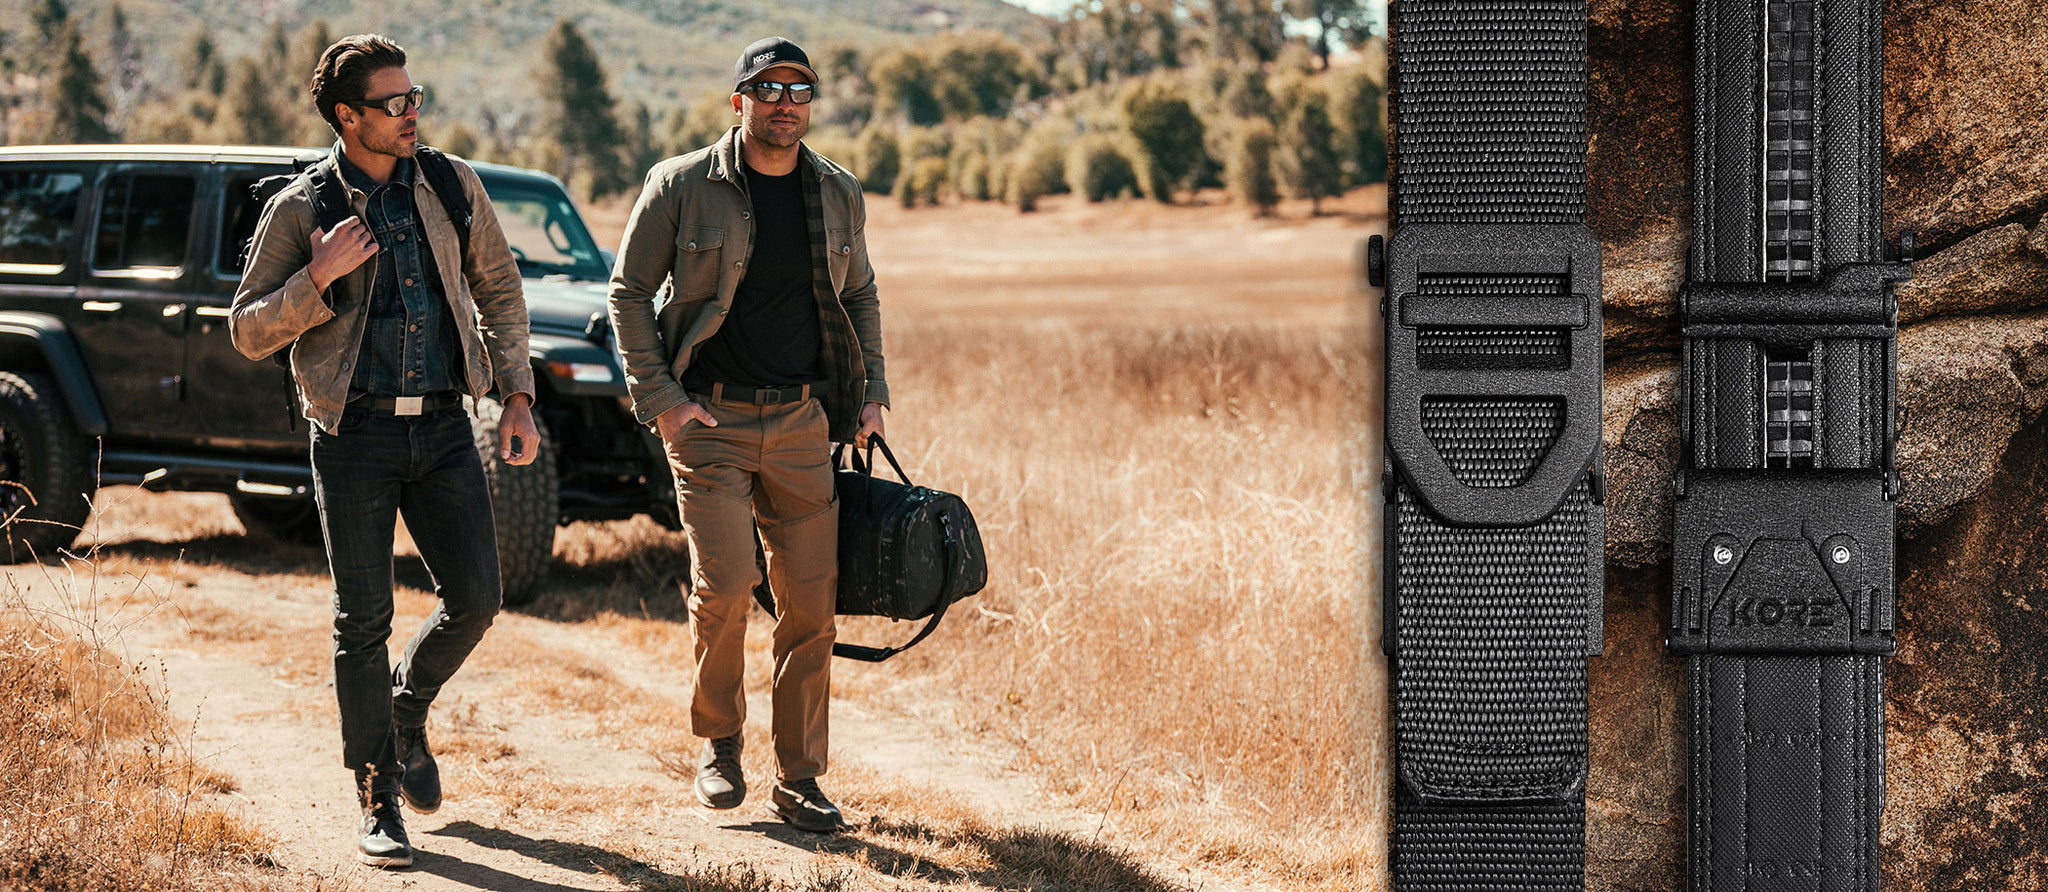 Shop Kore Essentials The Ultimate Belt For Men At kore essentials creating innovative, quality products for men is what we do. shop kore essentials the ultimate